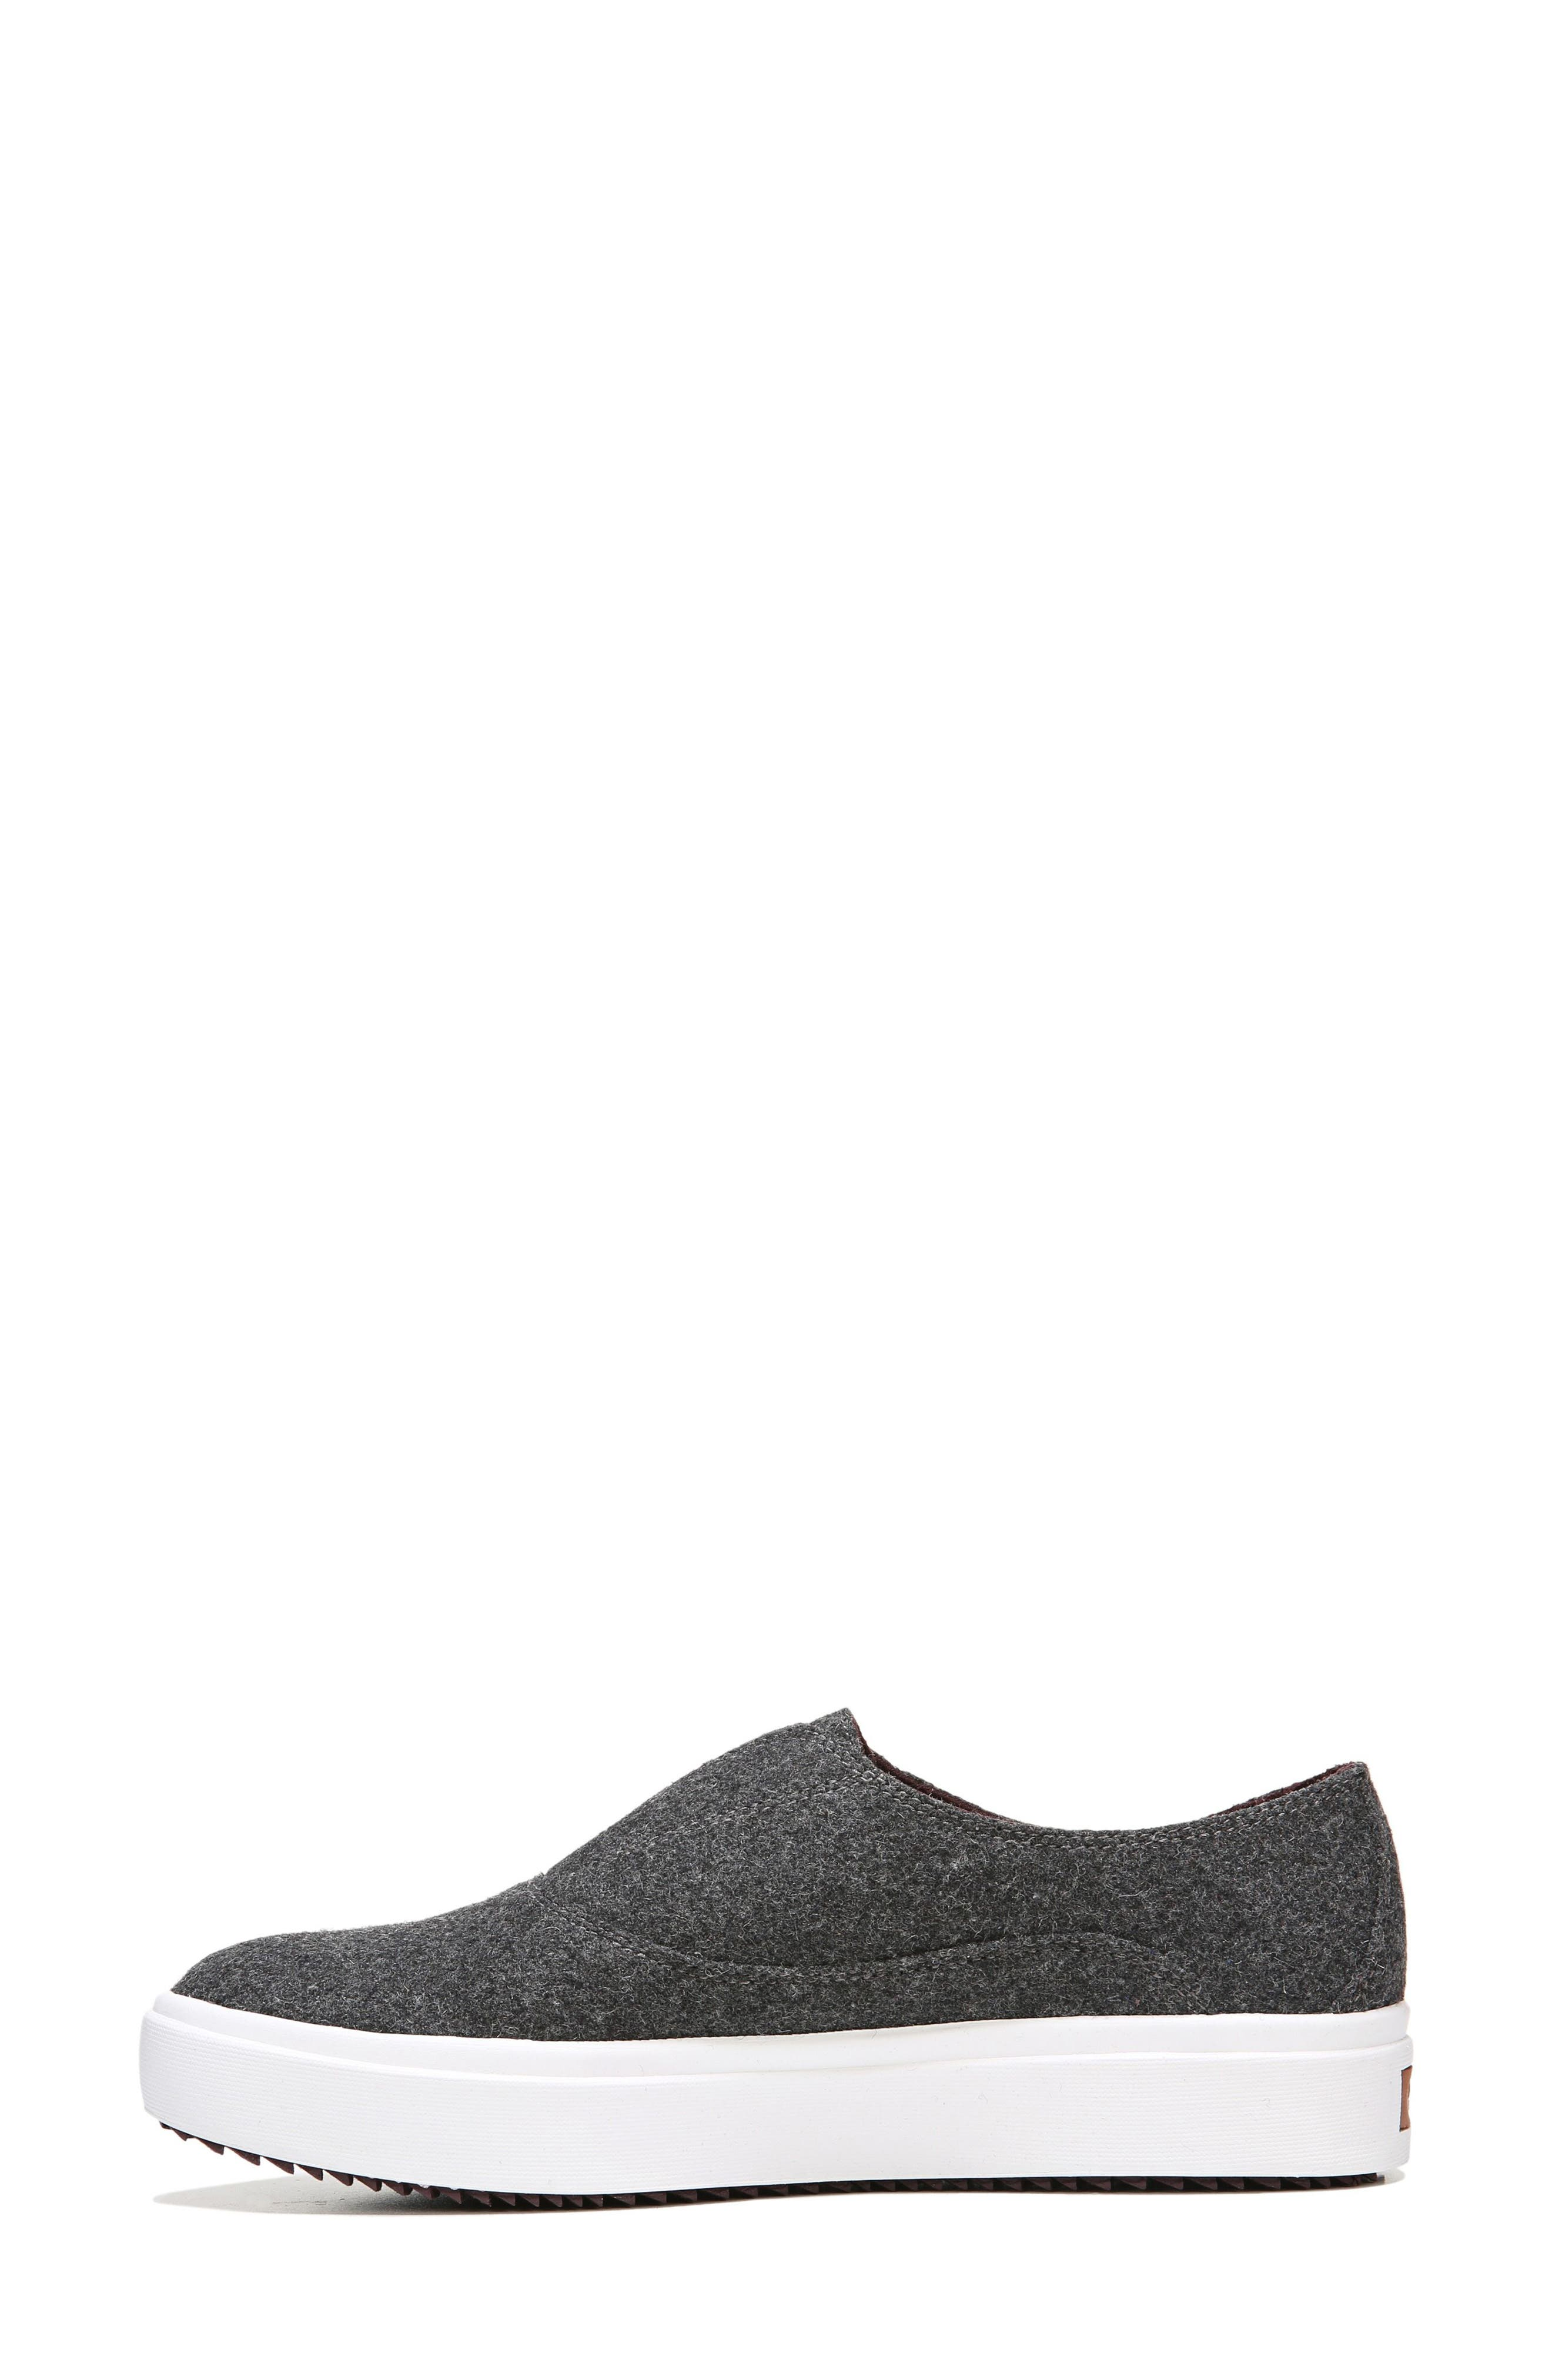 Brey Slip-On Sneaker,                             Alternate thumbnail 2, color,                             Charcoal Fabric